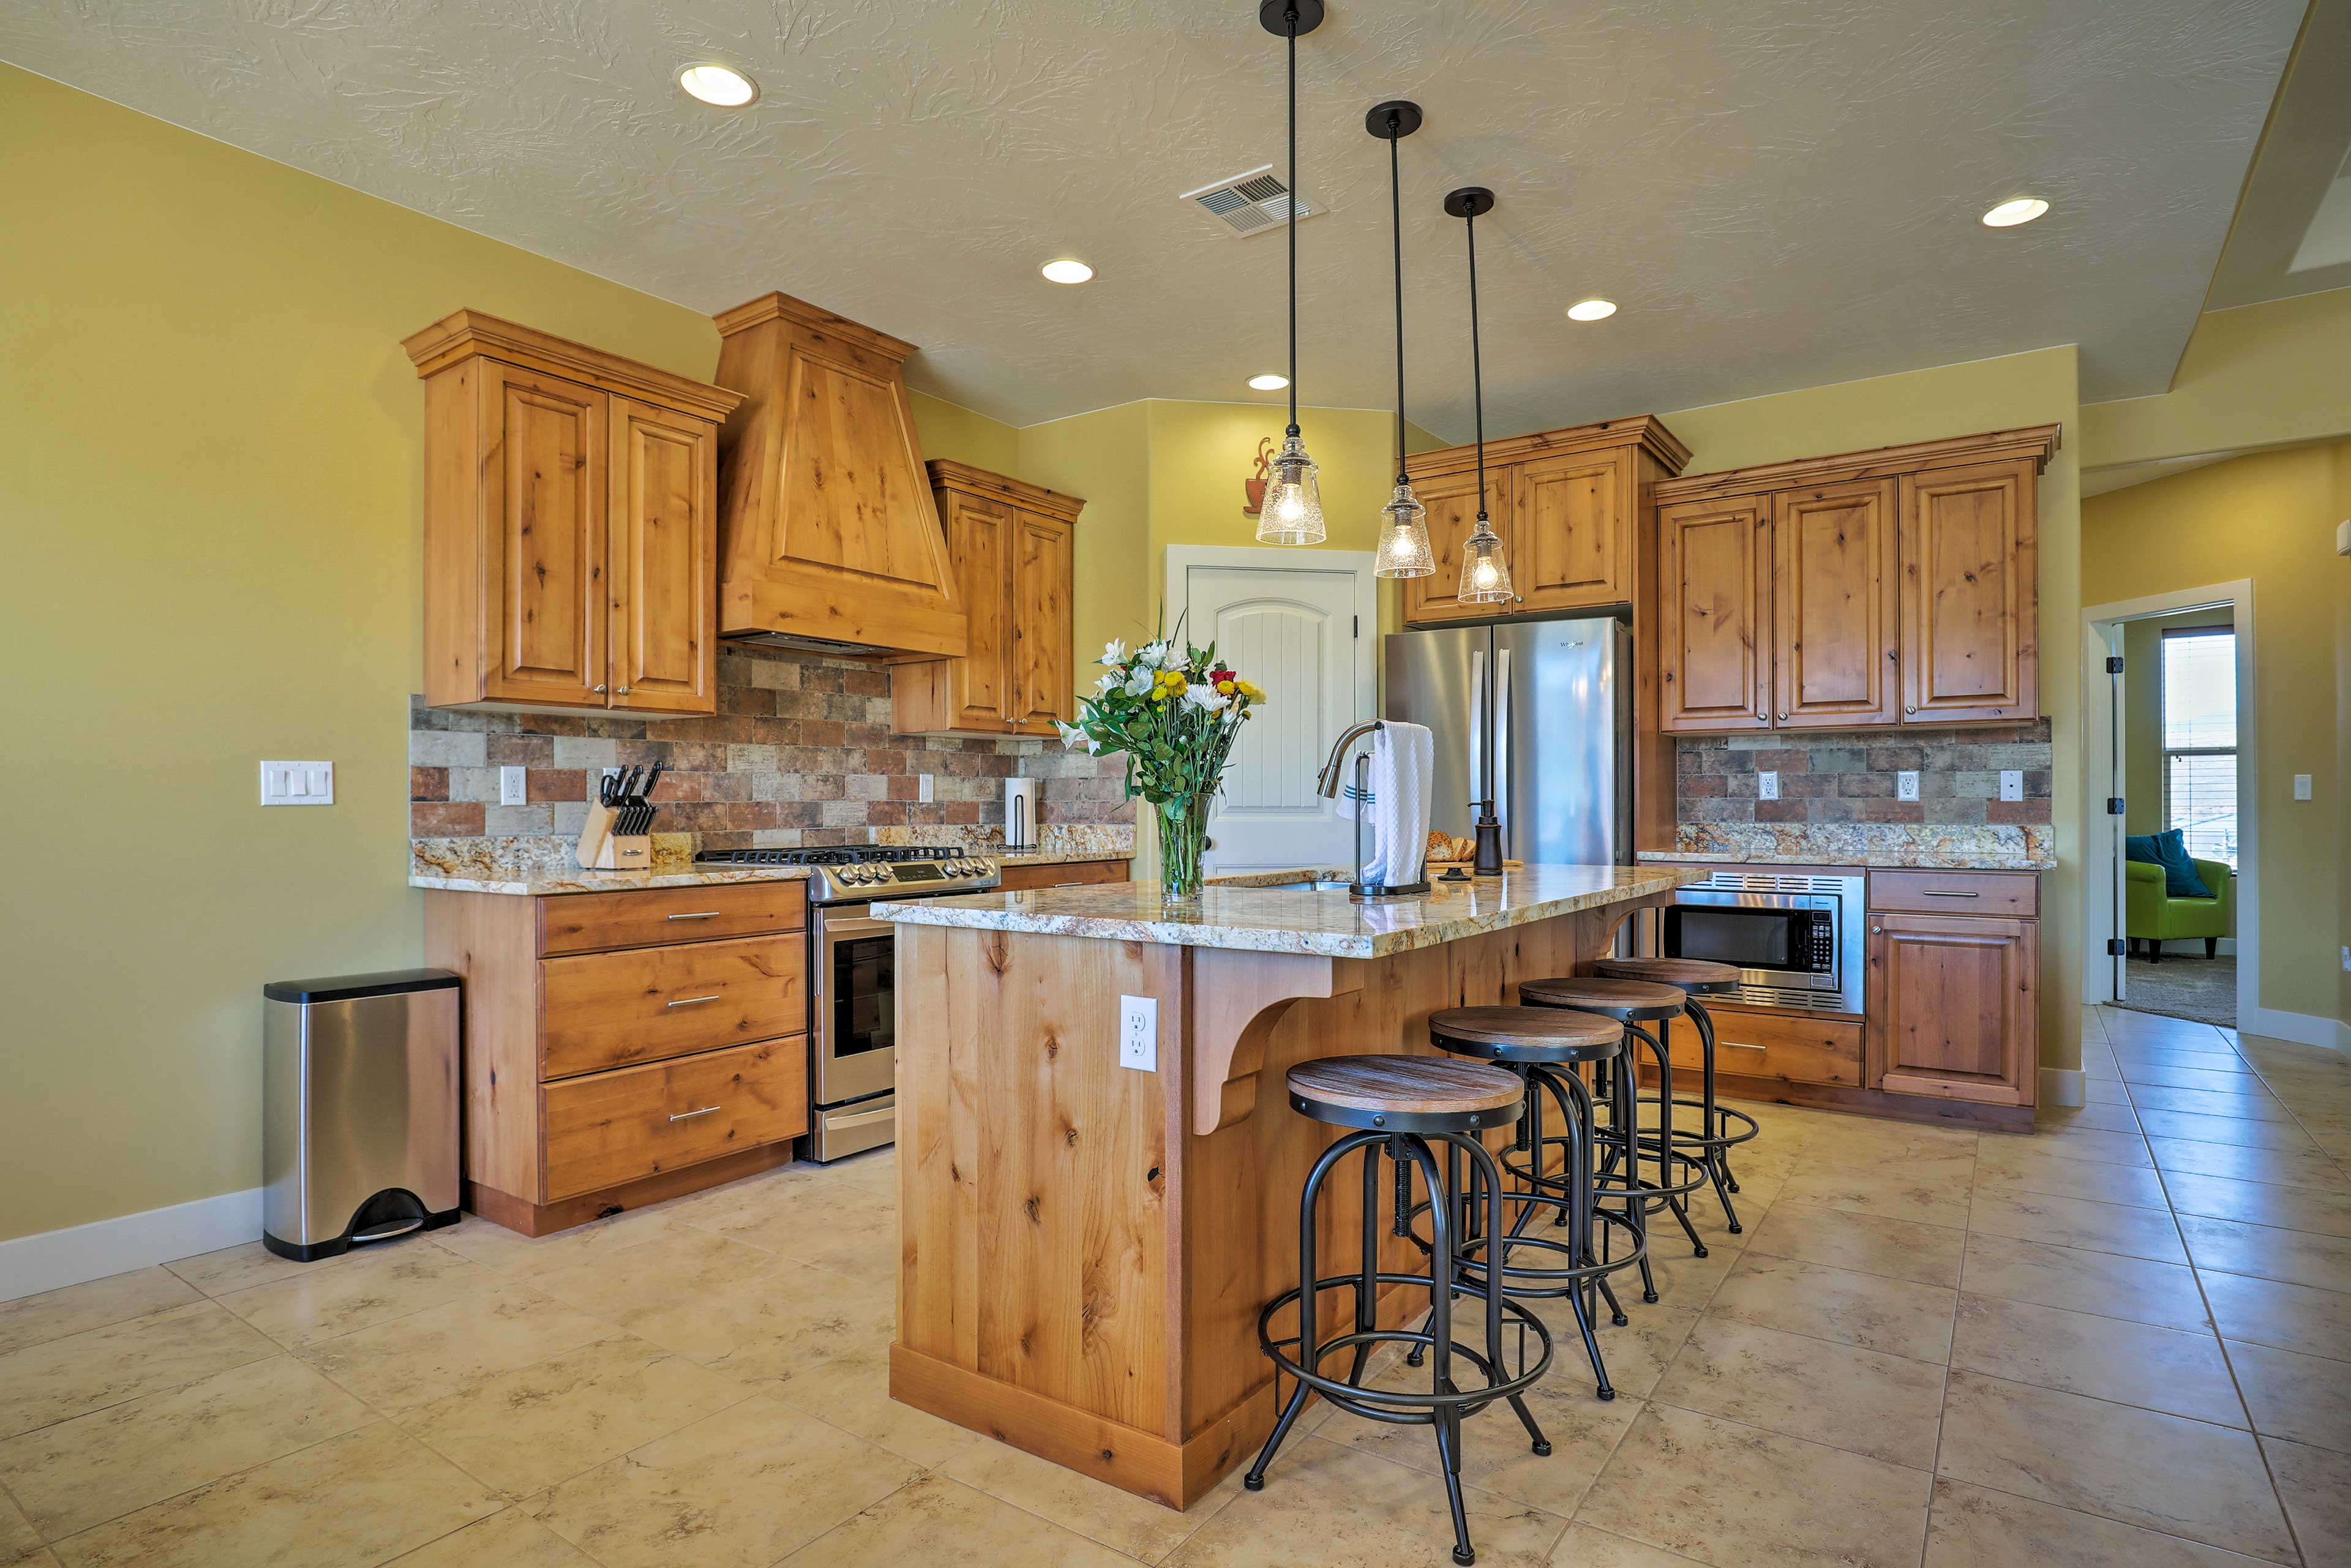 The spacious kitchen is a dream!